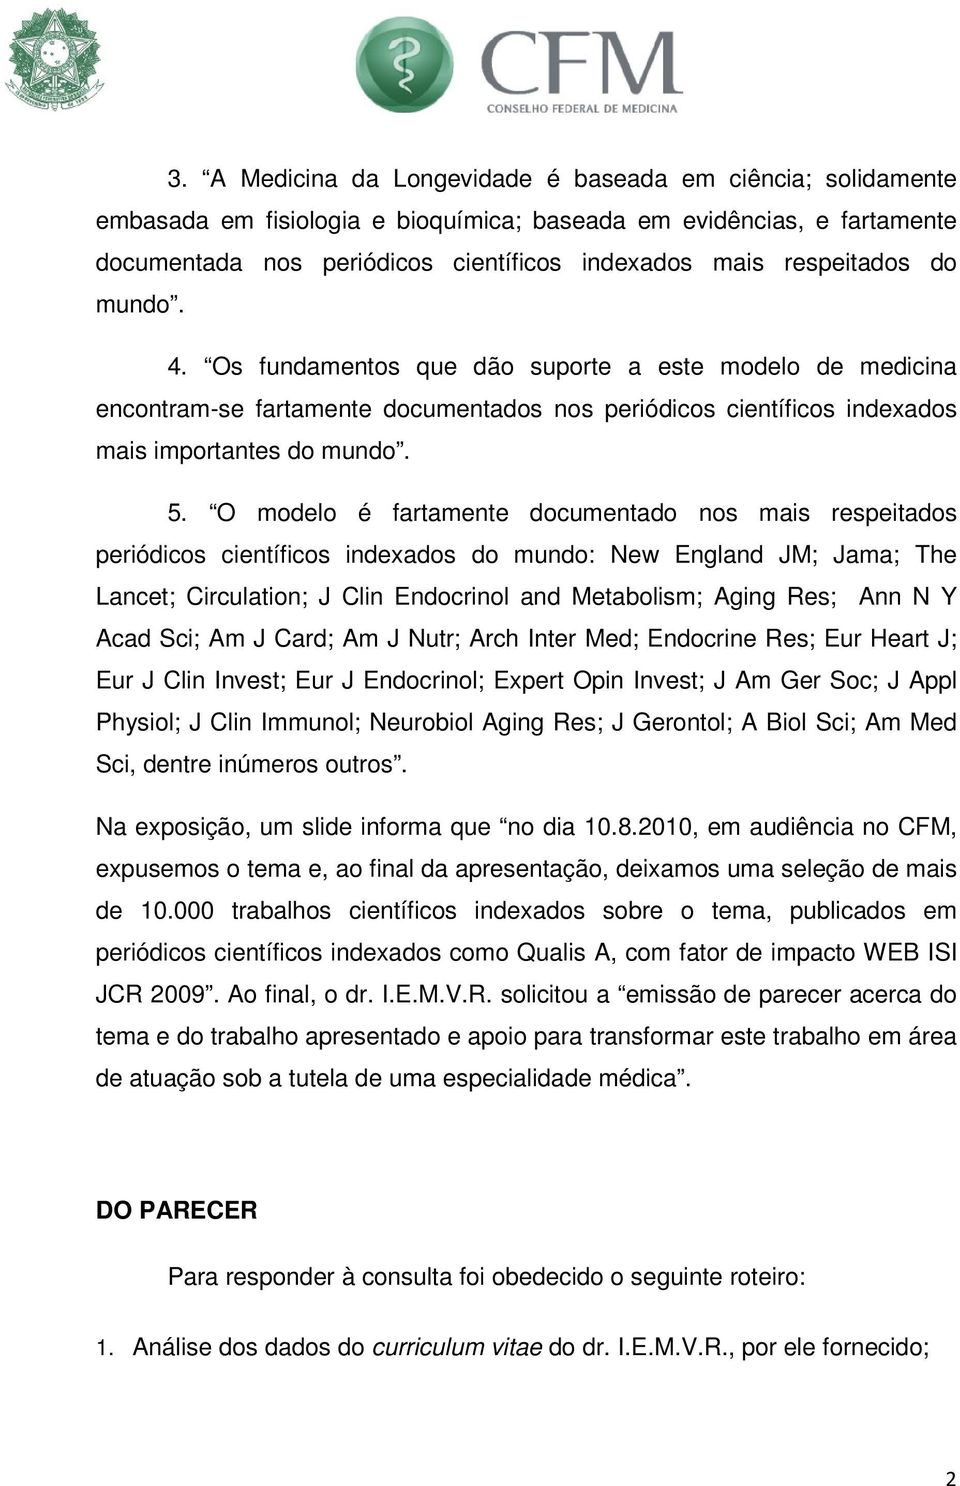 O modelo é fartamente documentado nos mais respeitados periódicos científicos indexados do mundo: New England JM; Jama; The Lancet; Circulation; J Clin Endocrinol and Metabolism; Aging Res; Ann N Y